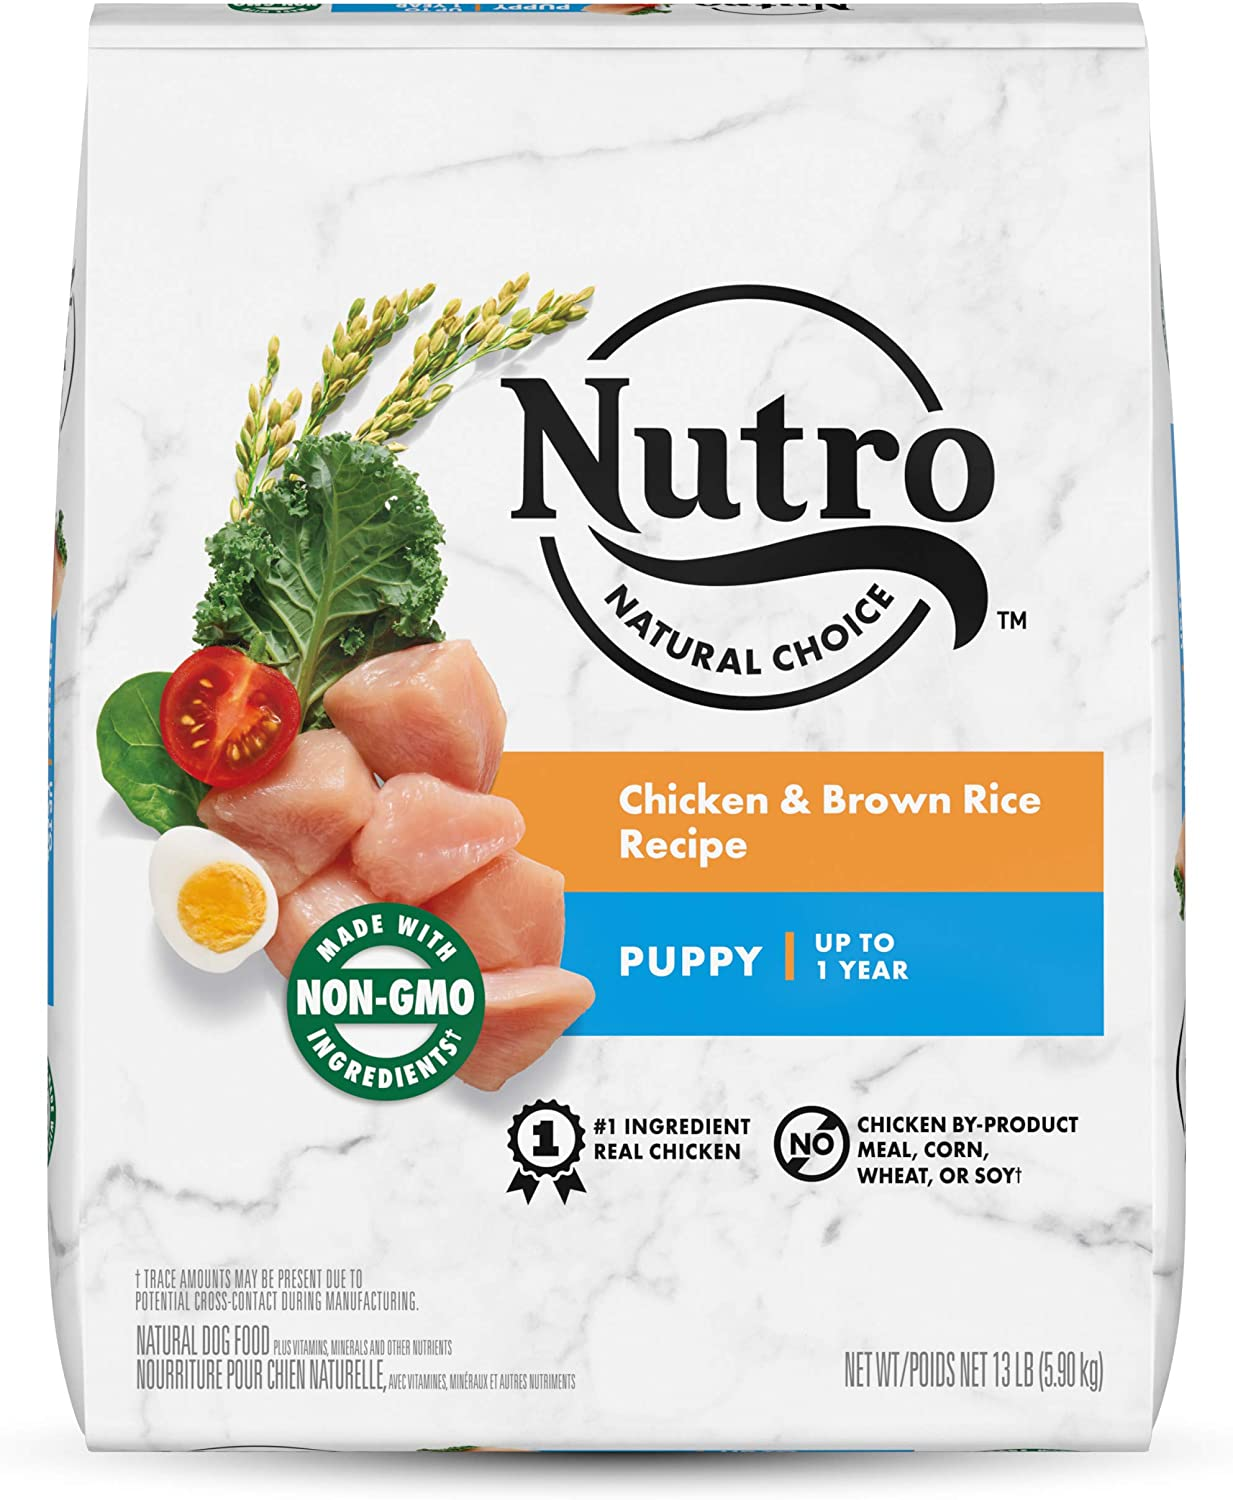 NUTRO NATURAL CHOICE Puppy Dry Dog Food, Chicken & Brown Rice Recipe Dog Kibble, 13 lb. Bag